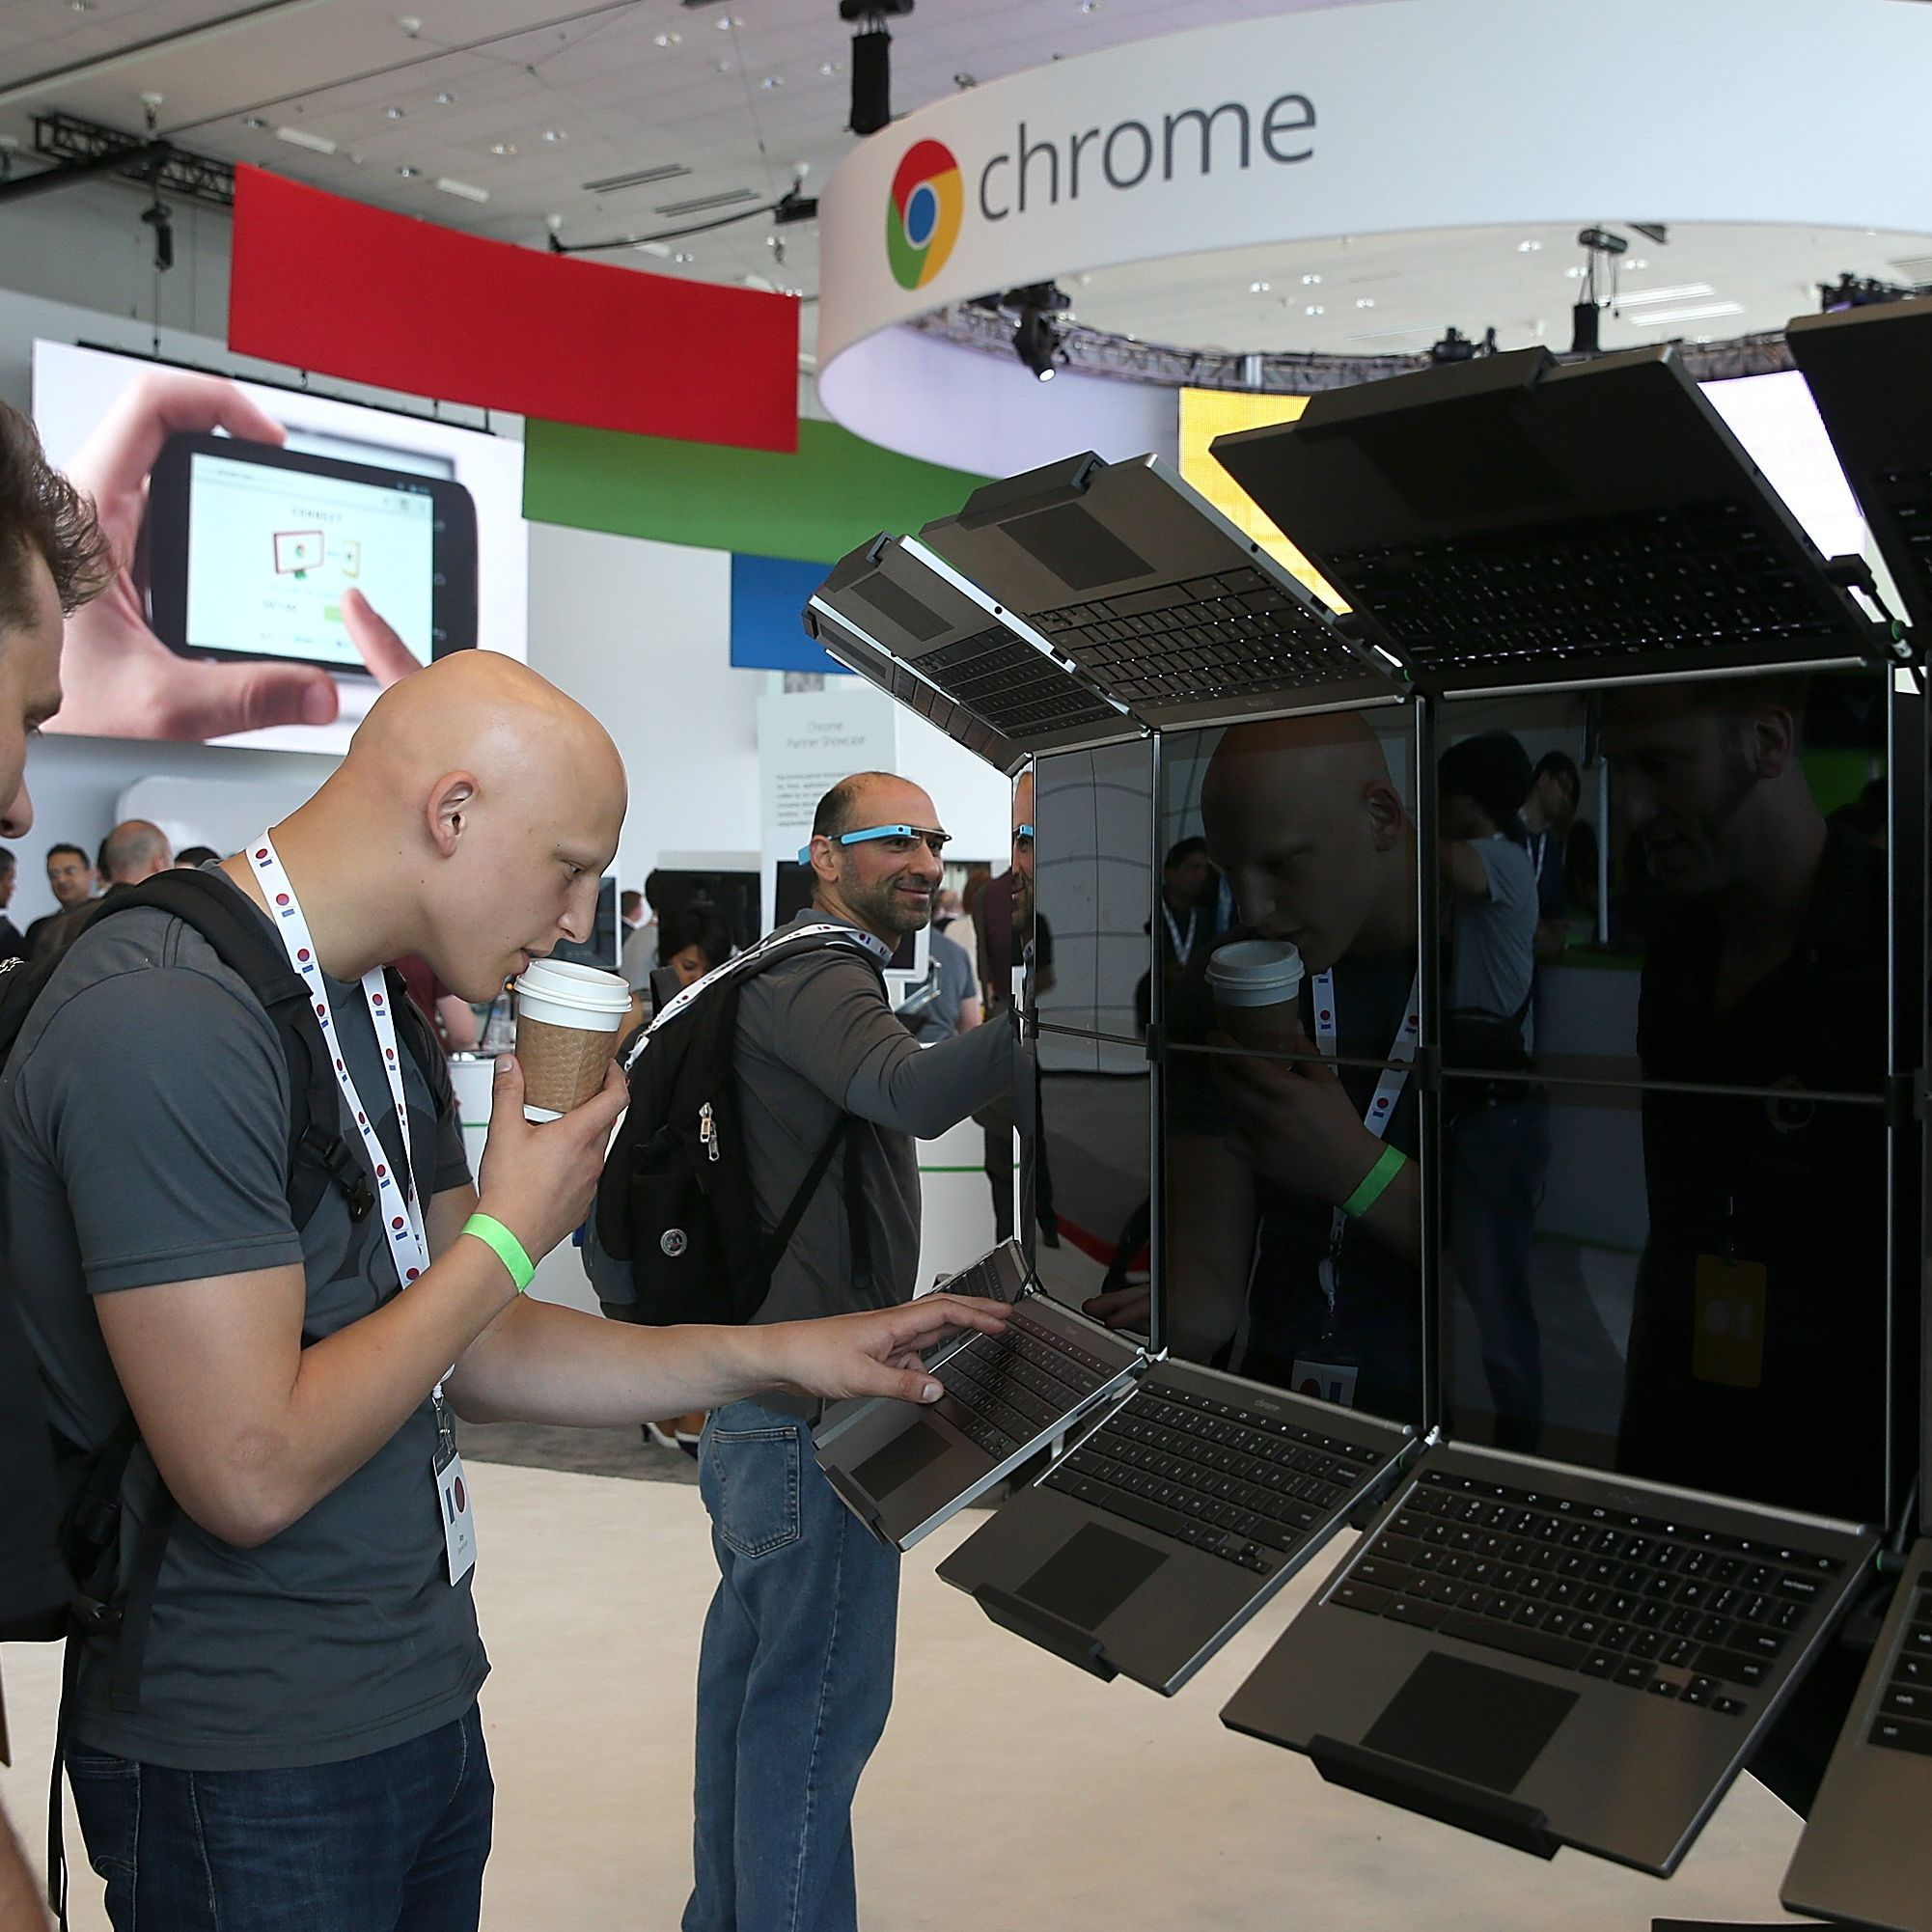 Is Your Chromebook Frozen? Find Out How to Fix It for Free